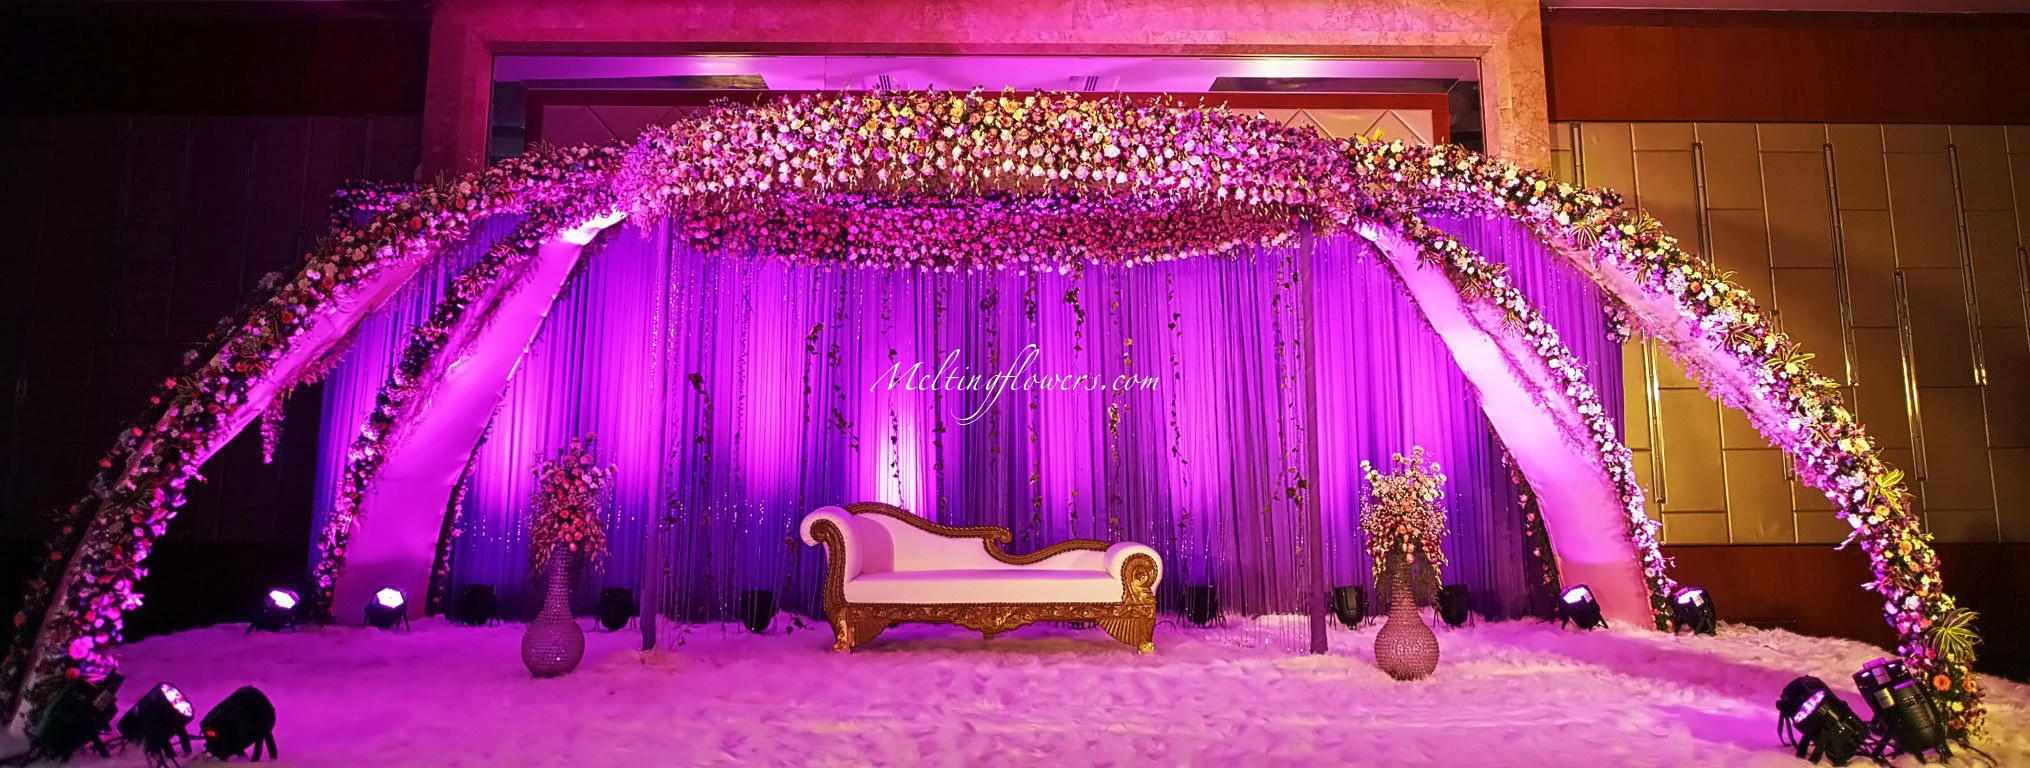 Tips To Make Sure That Setting Up A Reception Stage Decoration Is Not A  Hassle! | Wedding Decorations, Flower Decoration, Marriage Decoration |  Melting Flowers Blog